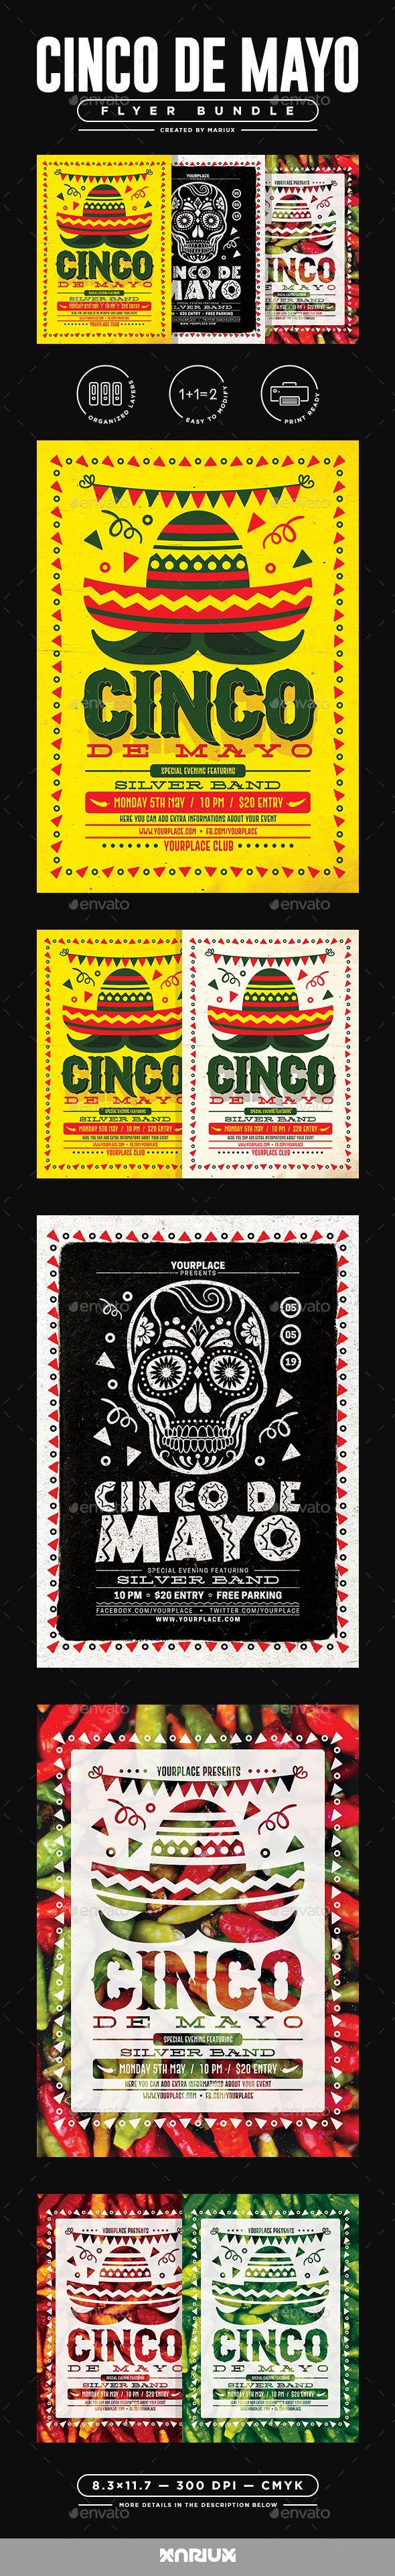 Cinco de Mayo Flyer/Poster Bundle - Events Flyers